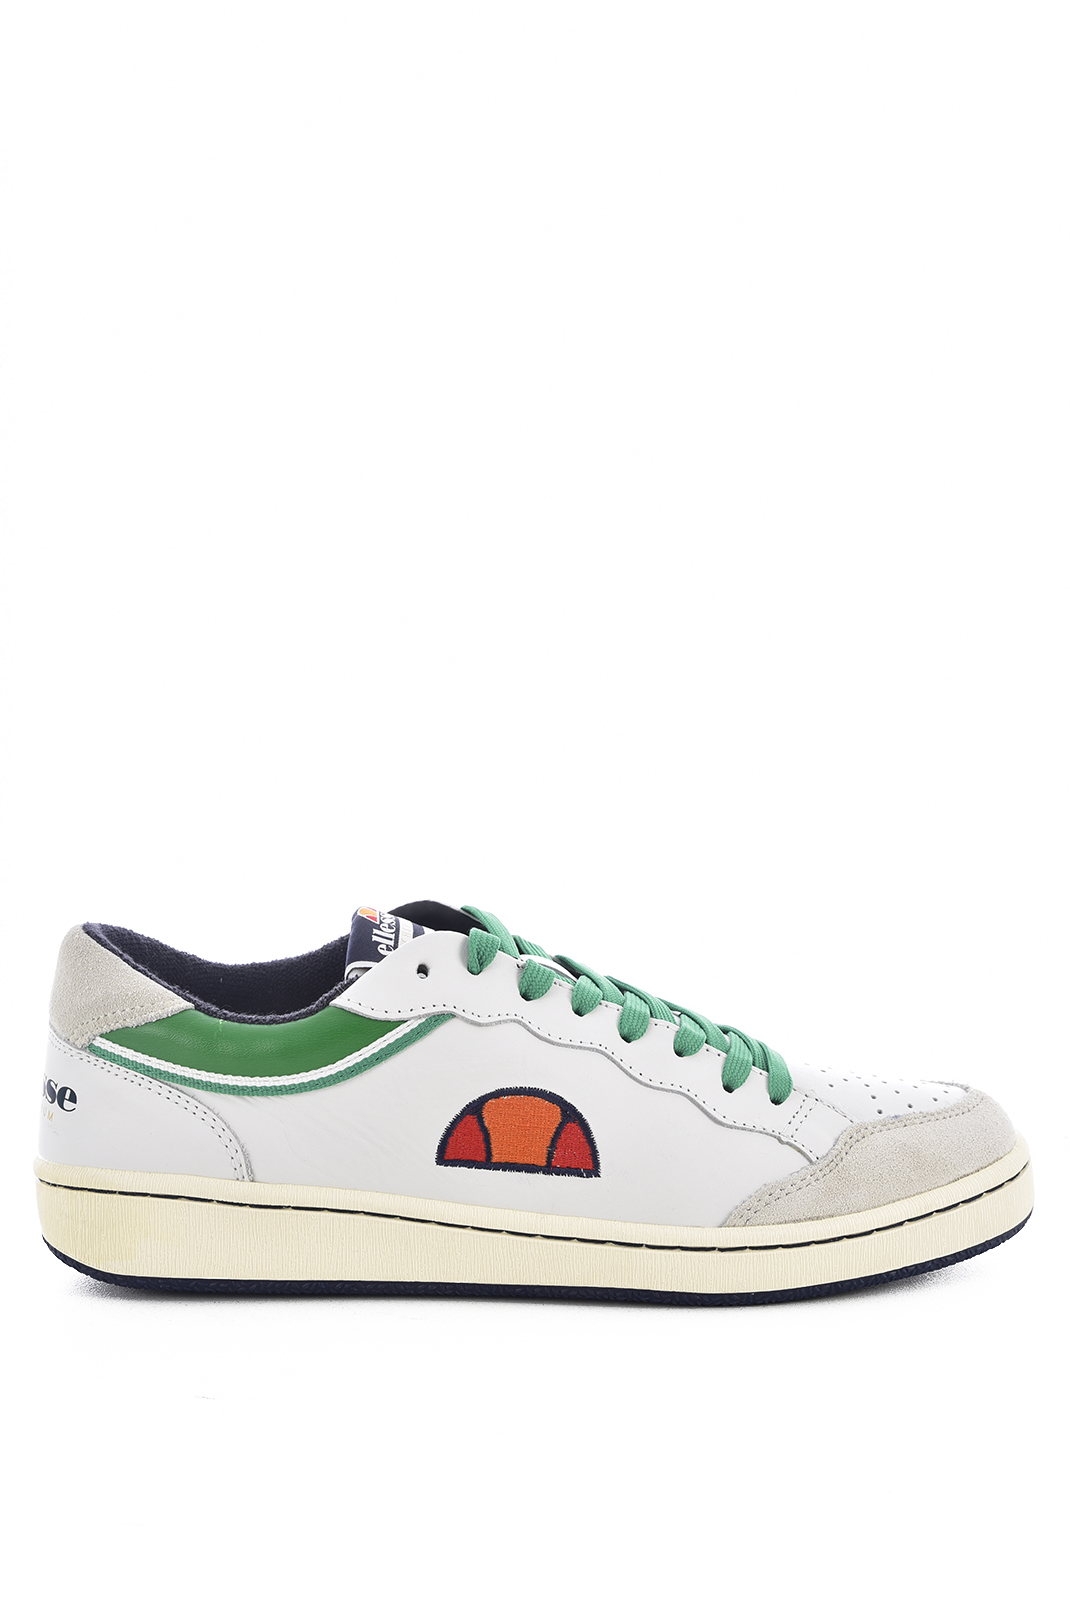 Baskets / Sport  Ellesse EL814468 H 21 WHITE / AMAZON